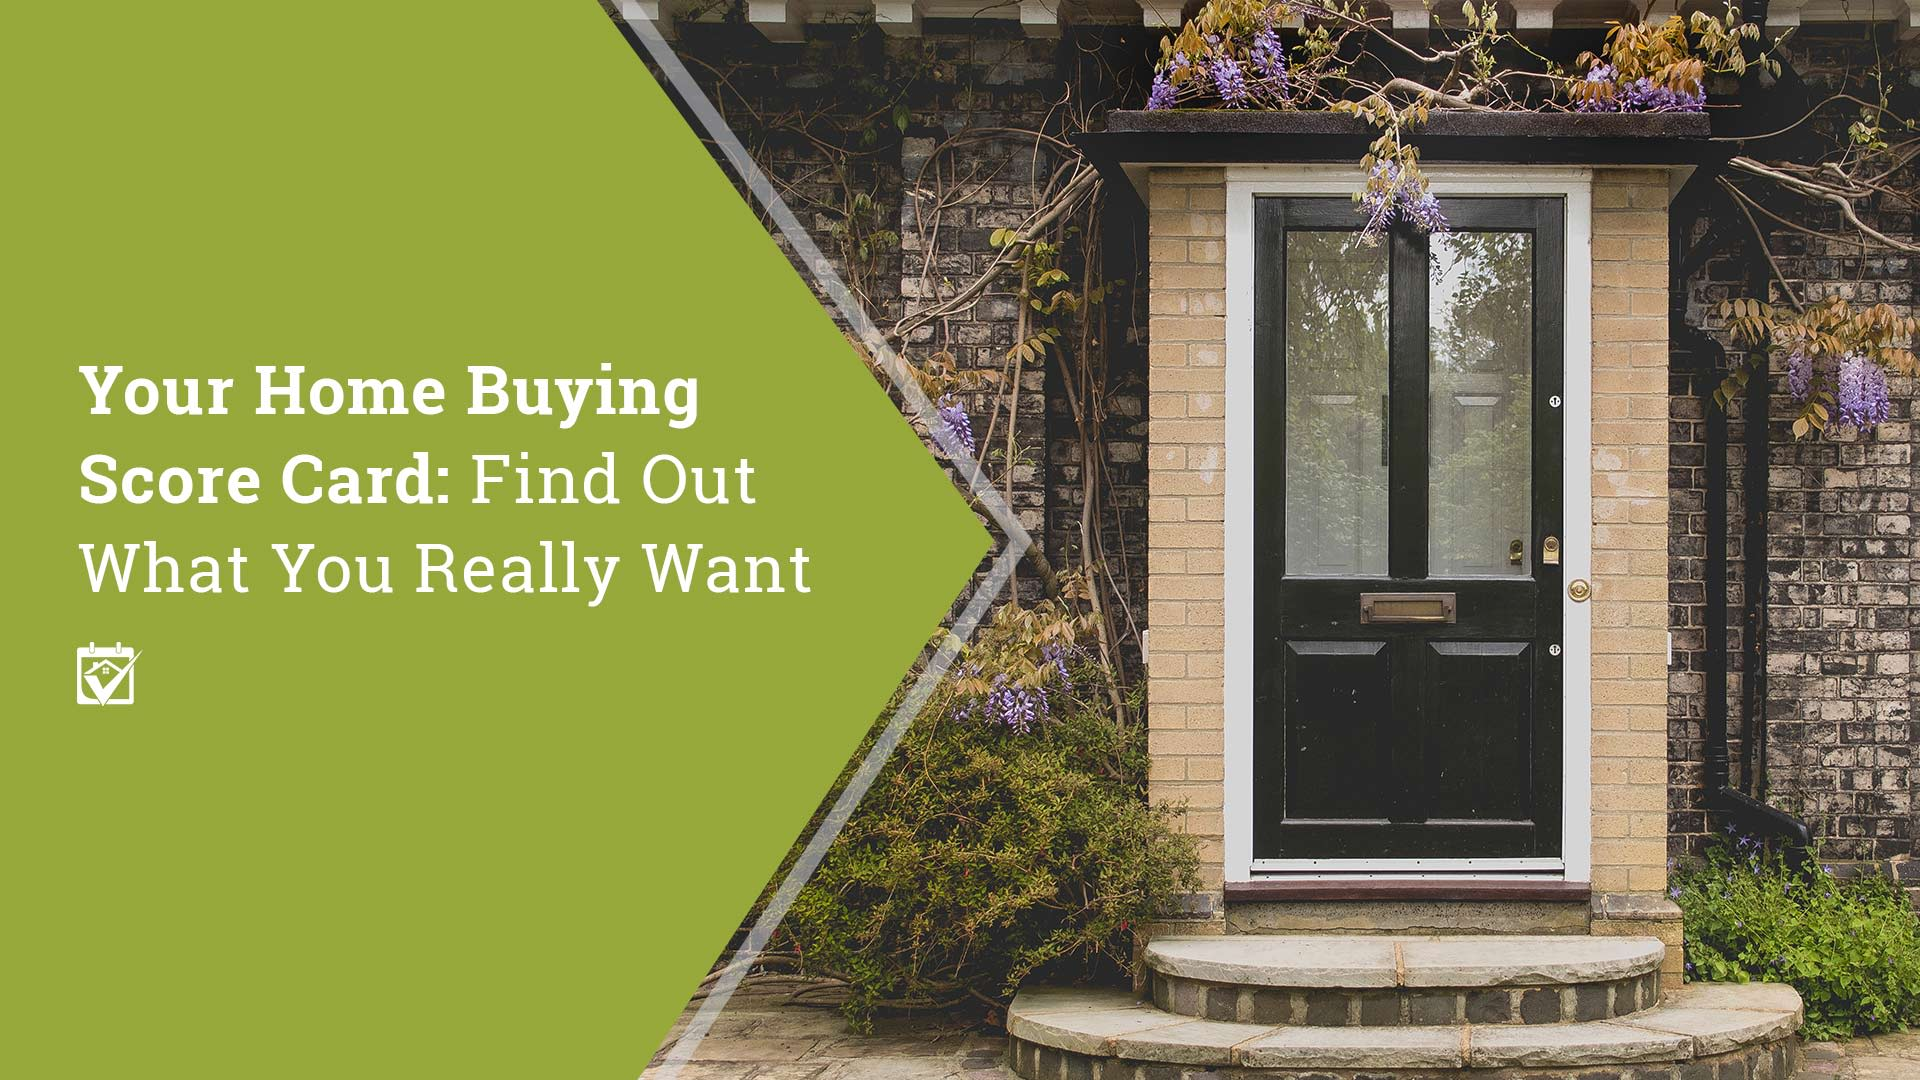 Your Home Buying Score Card: Find out what you really want.